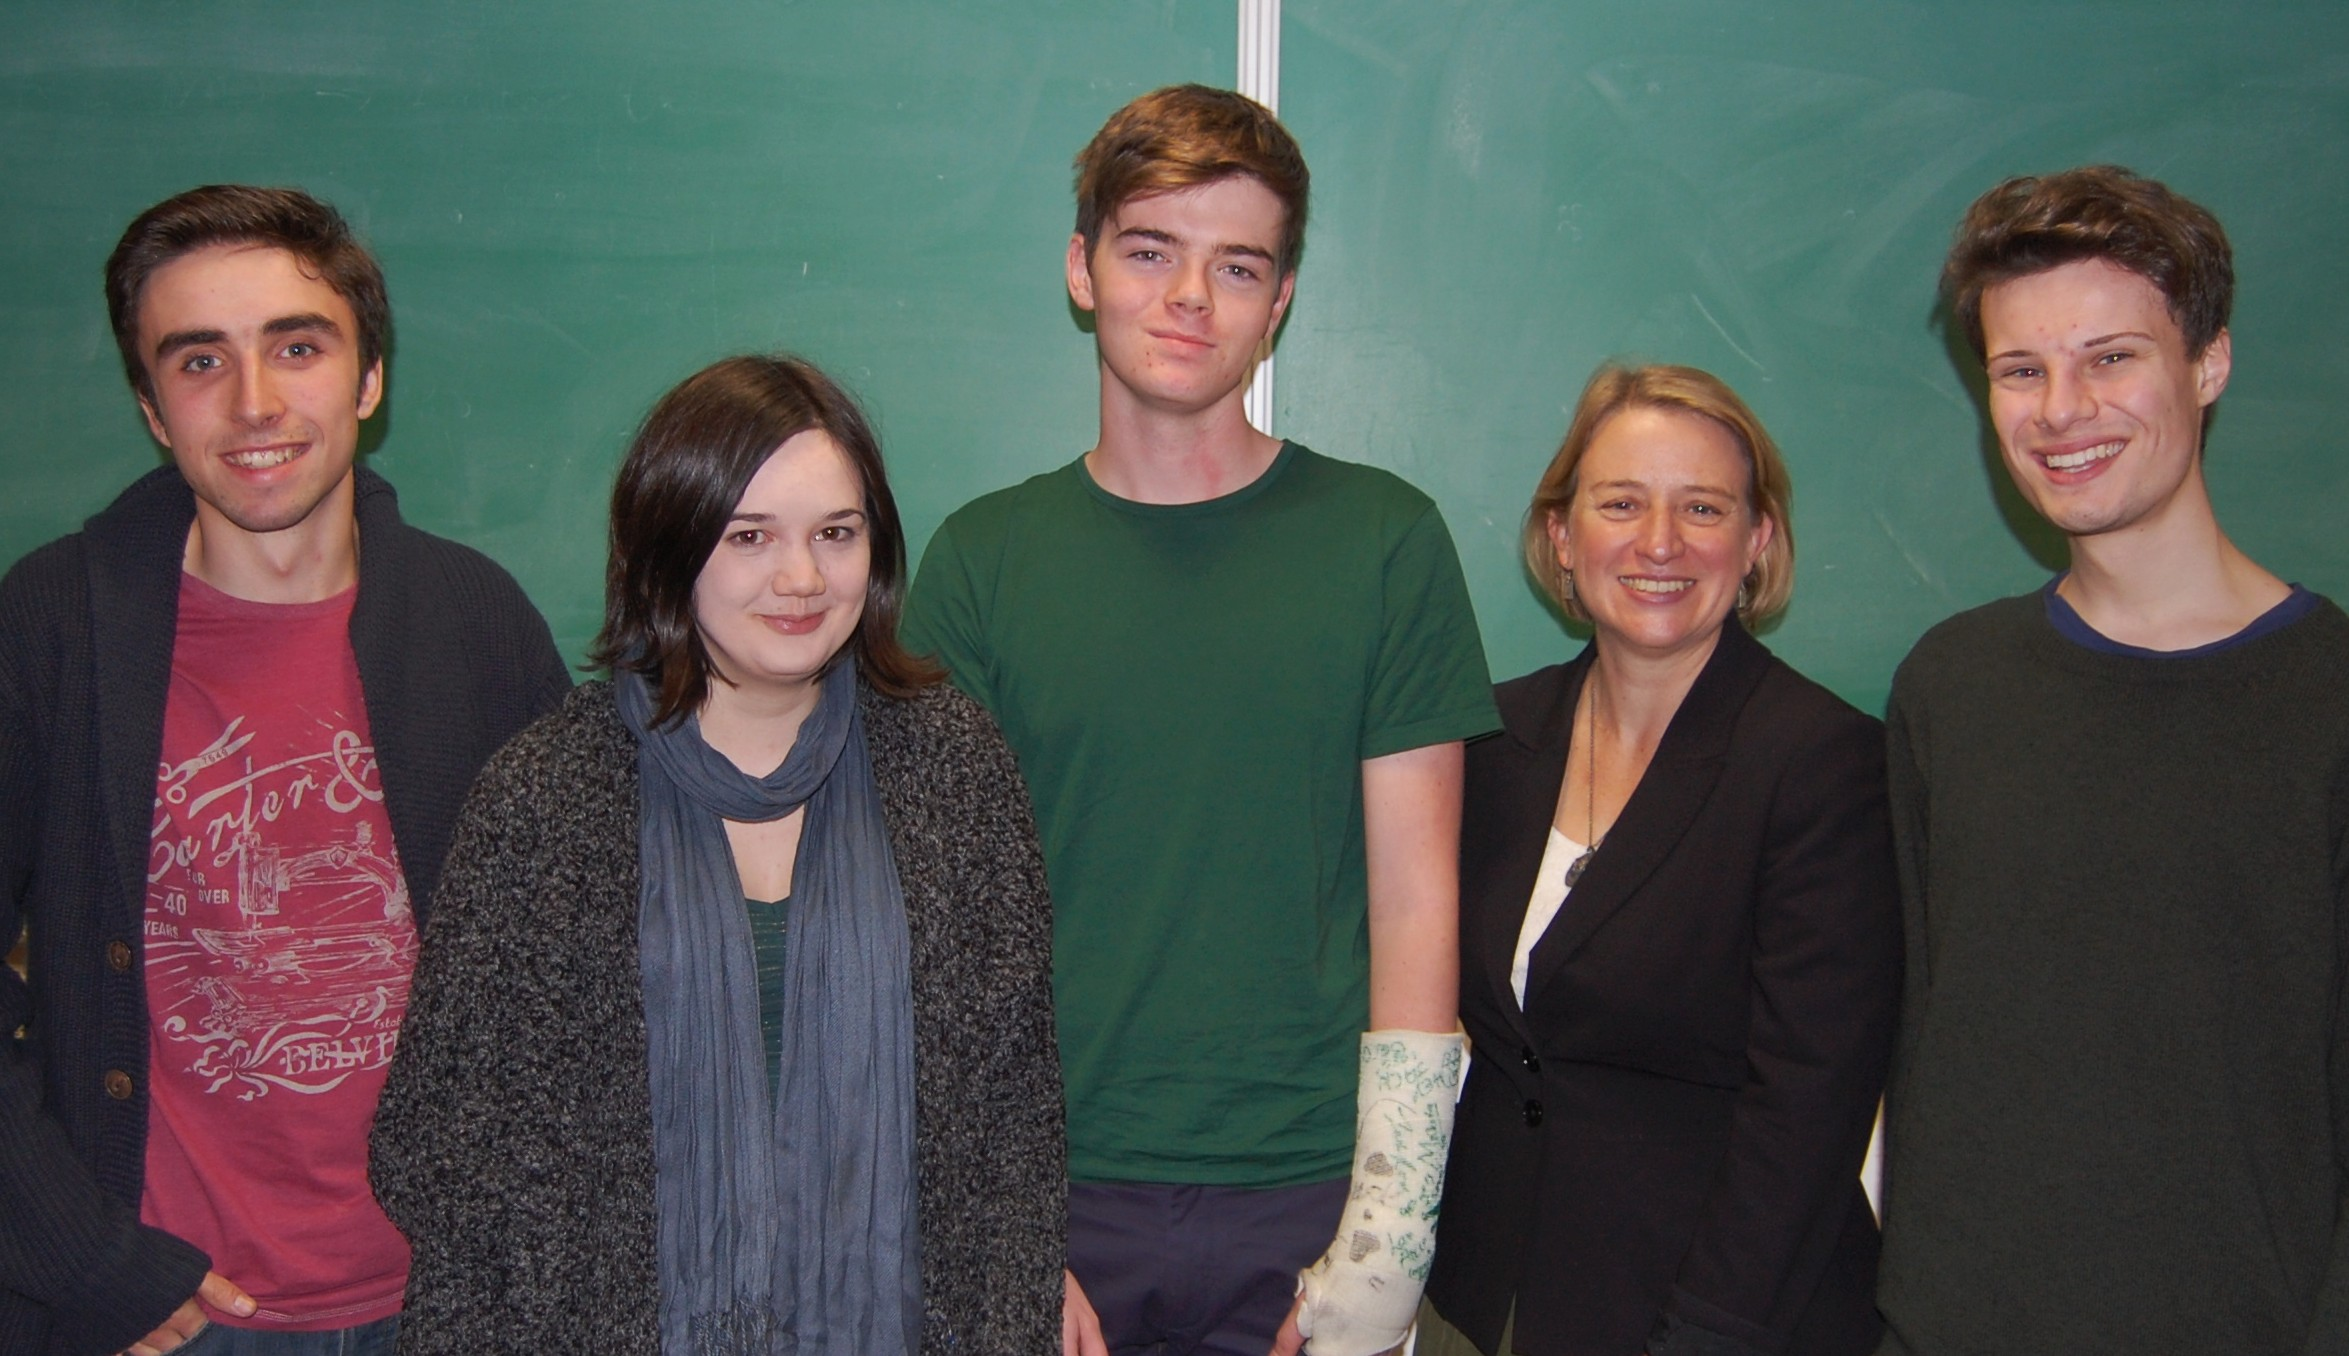 Natalie Bennett (2nd from right) with Green Party members/supporters